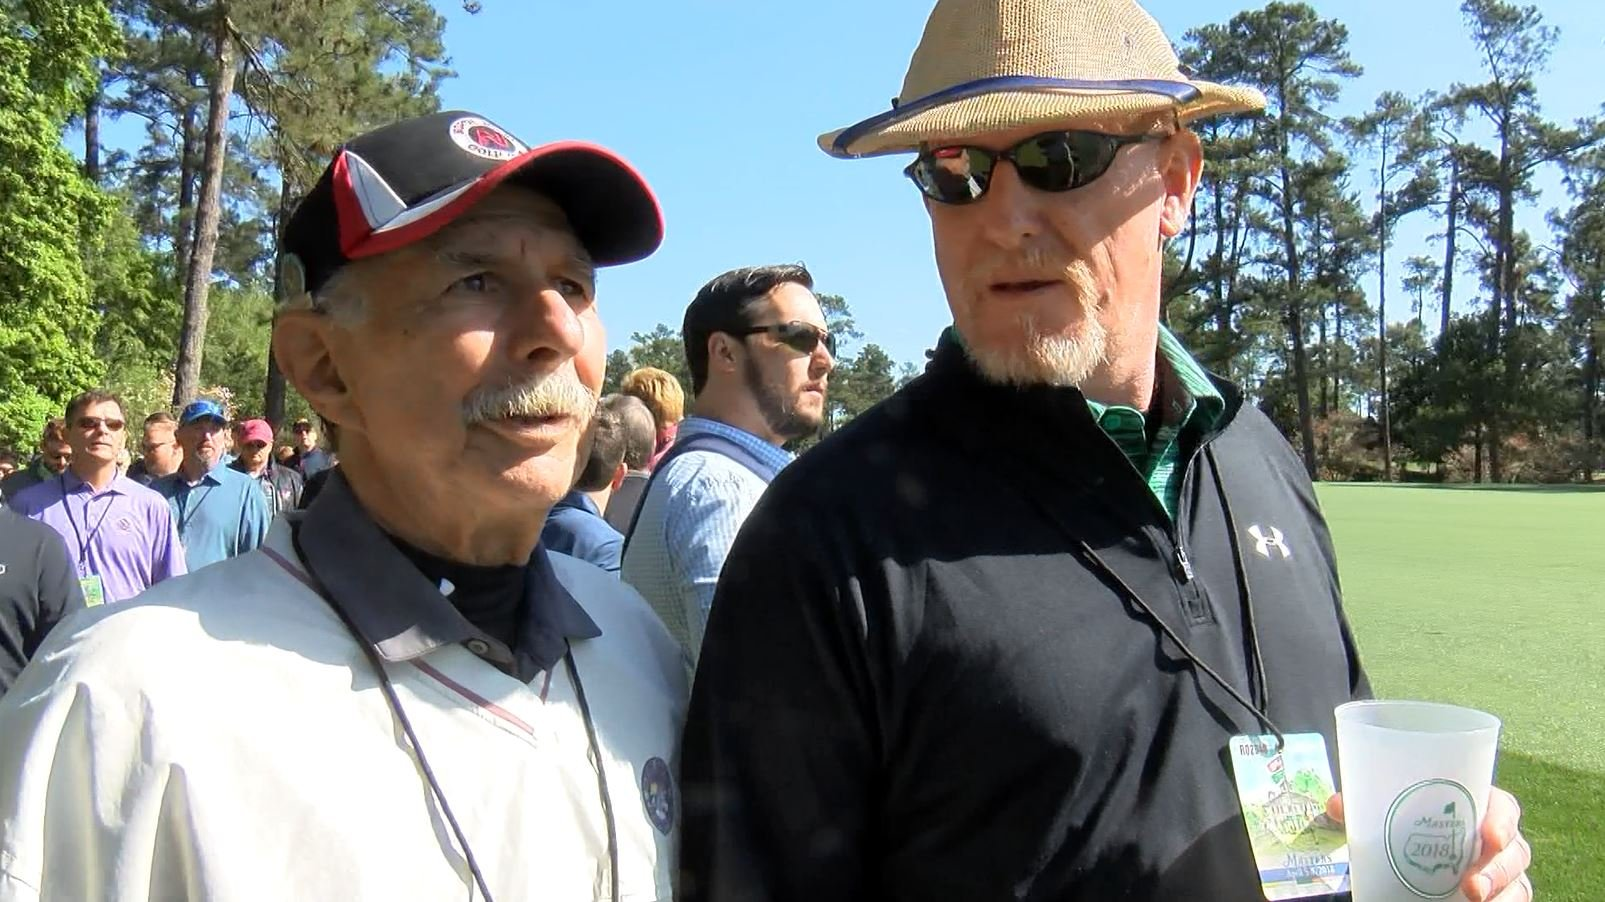 Mark Weaver and Tony Fiore following Tiger Woods' gallery at the 2018 Masters (WFXG)